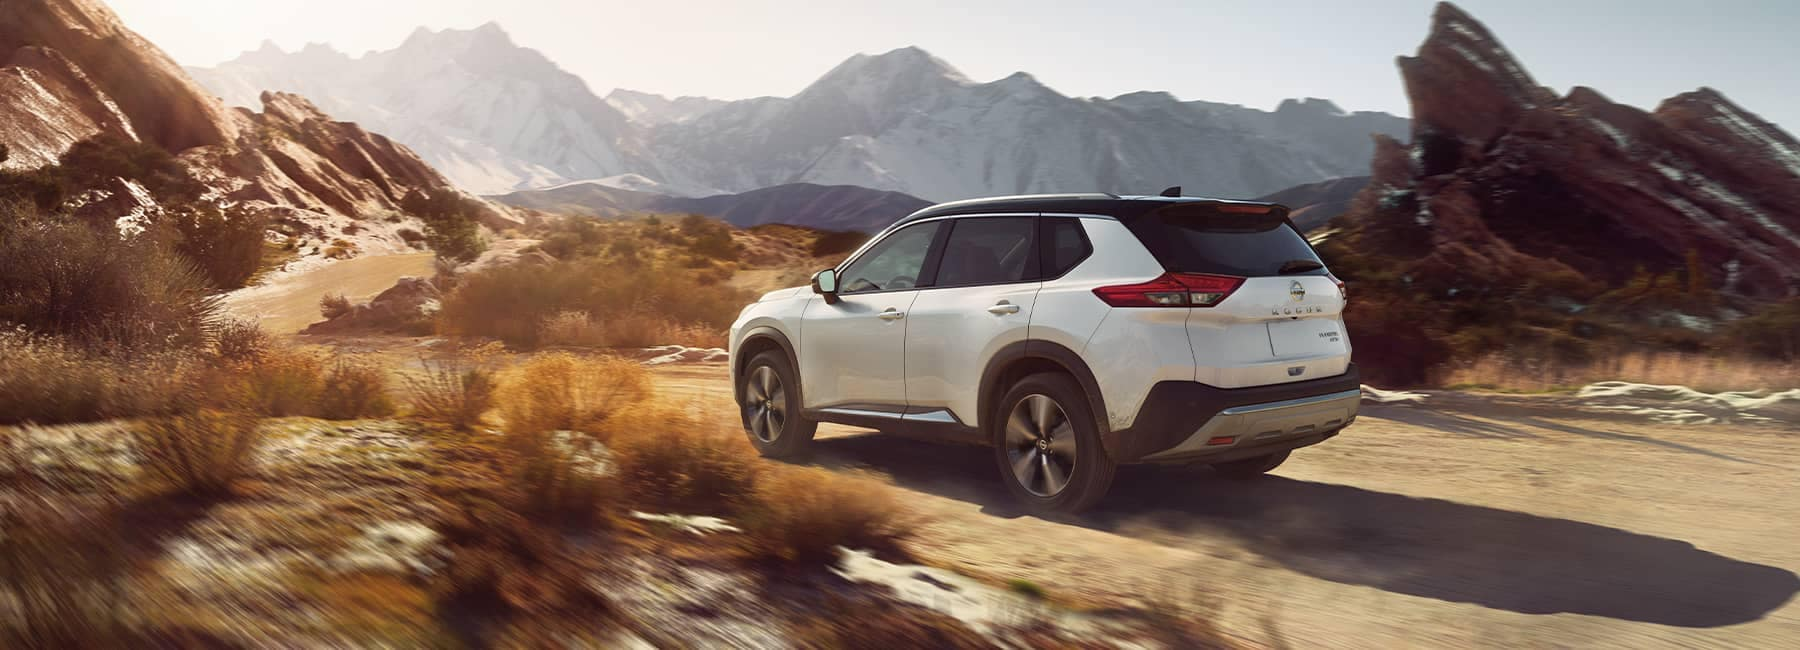 A 2021 White Nissan Rogue driving on a mountain pass